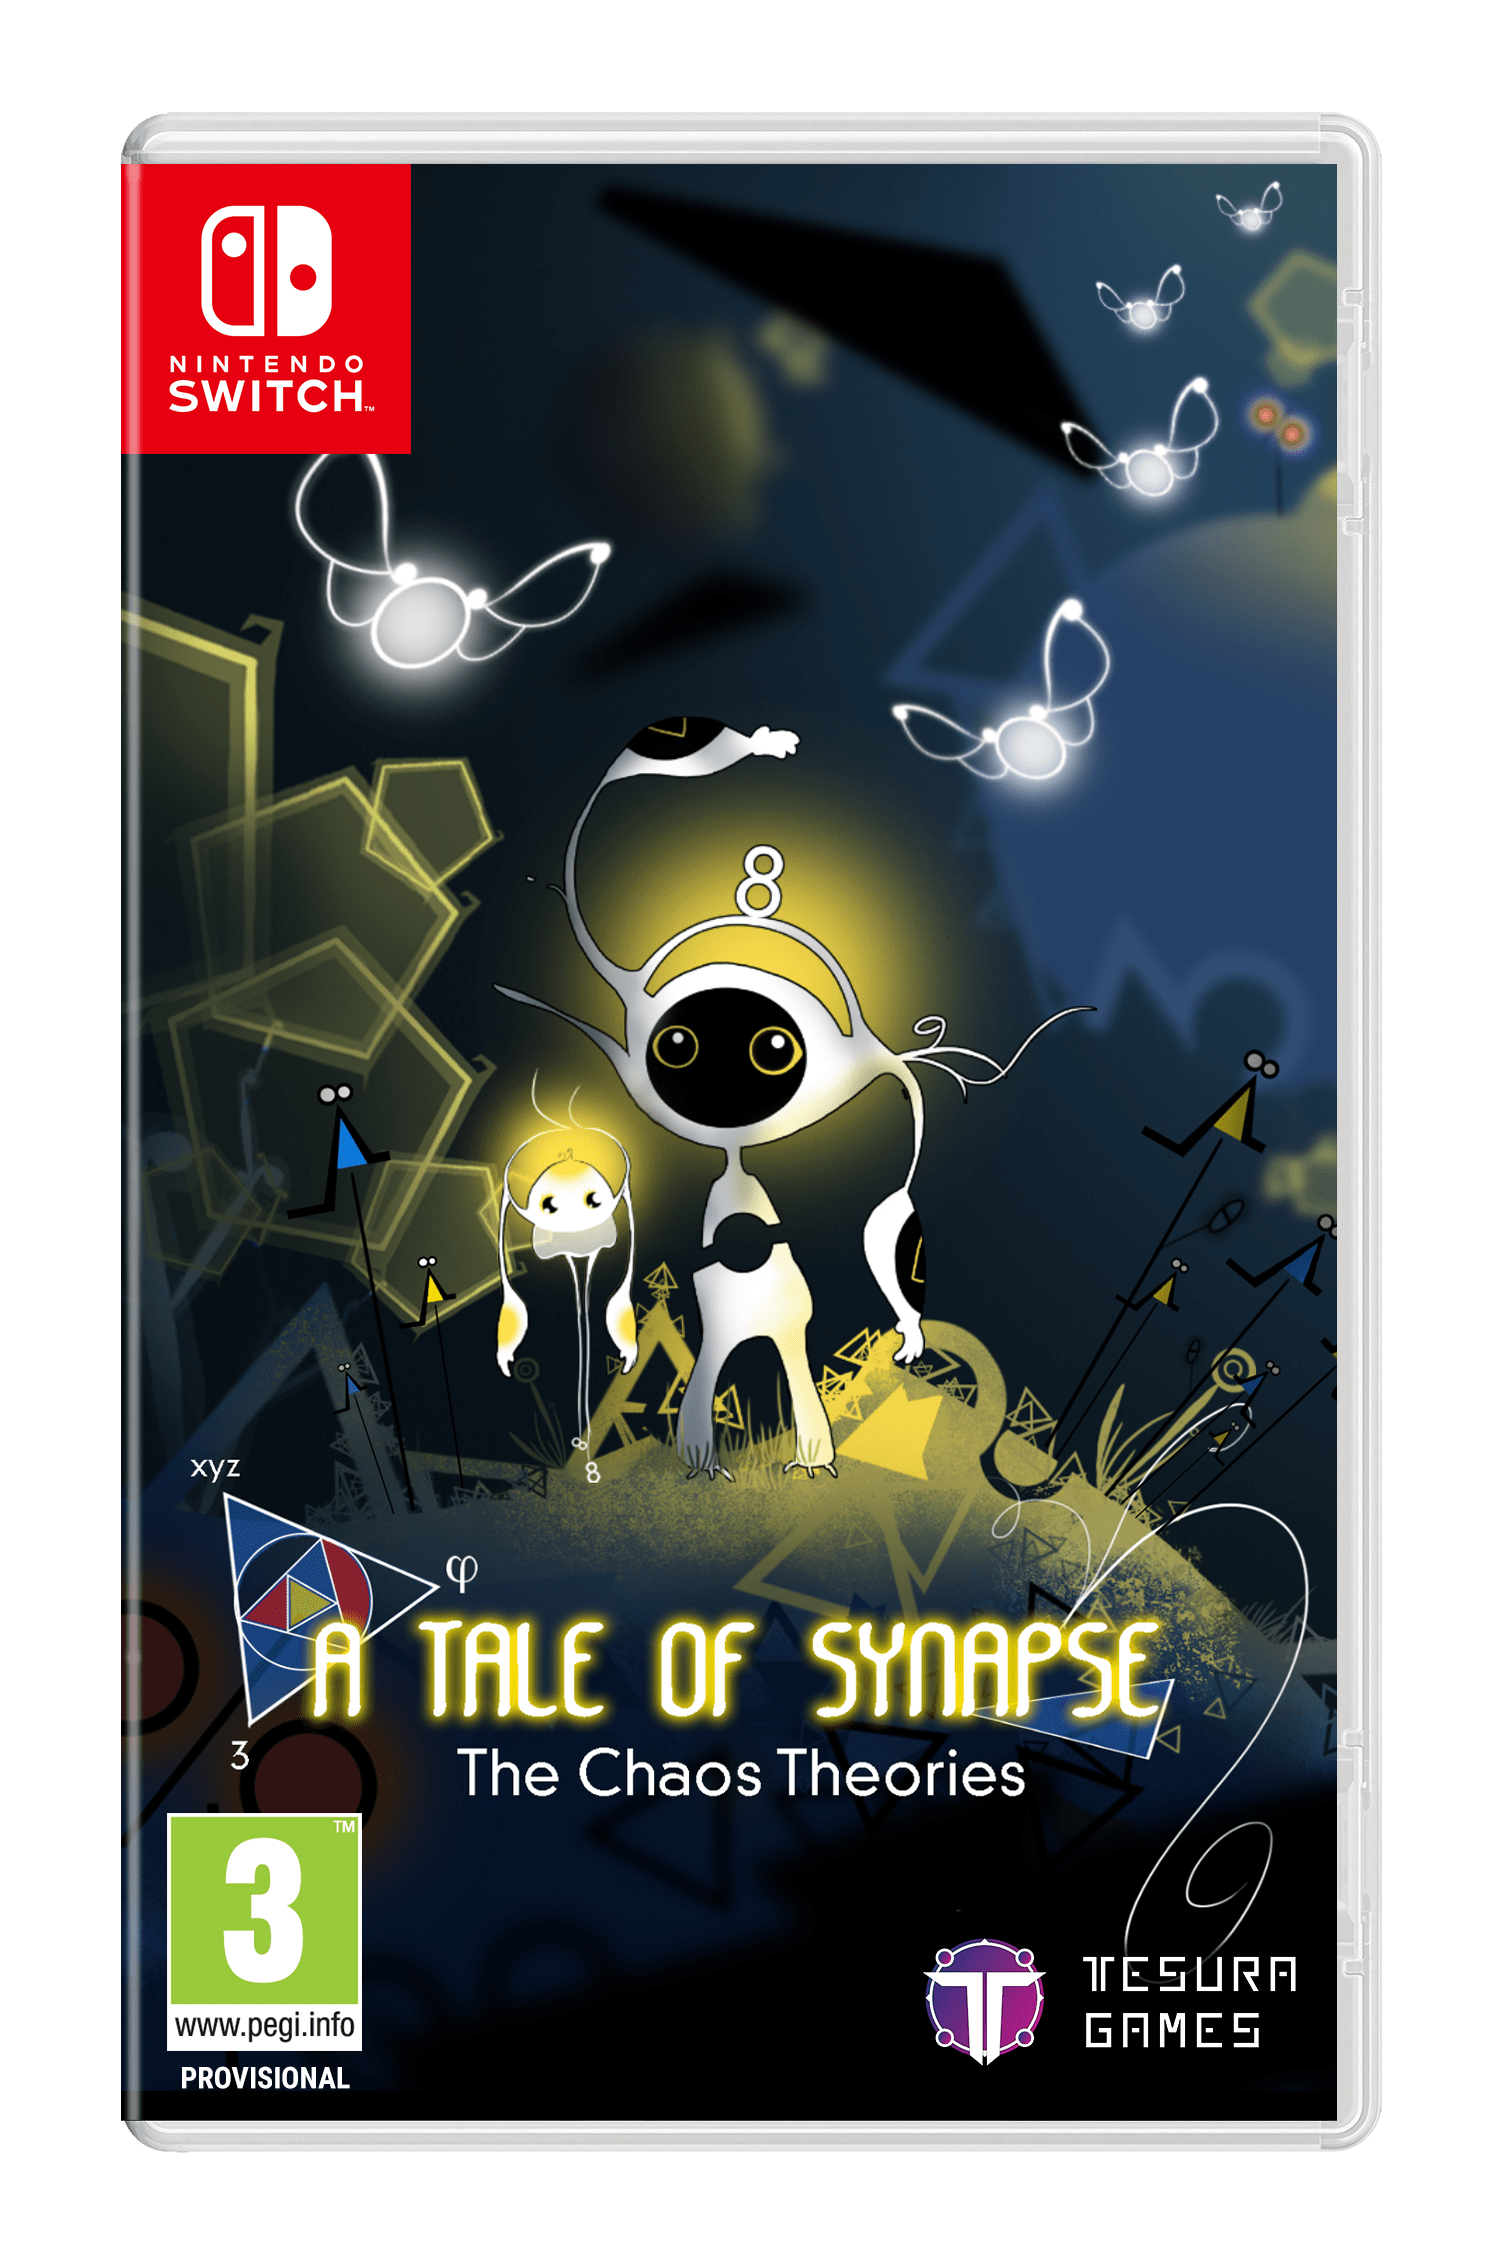 A Tale of Synapse: The Chaos Theories